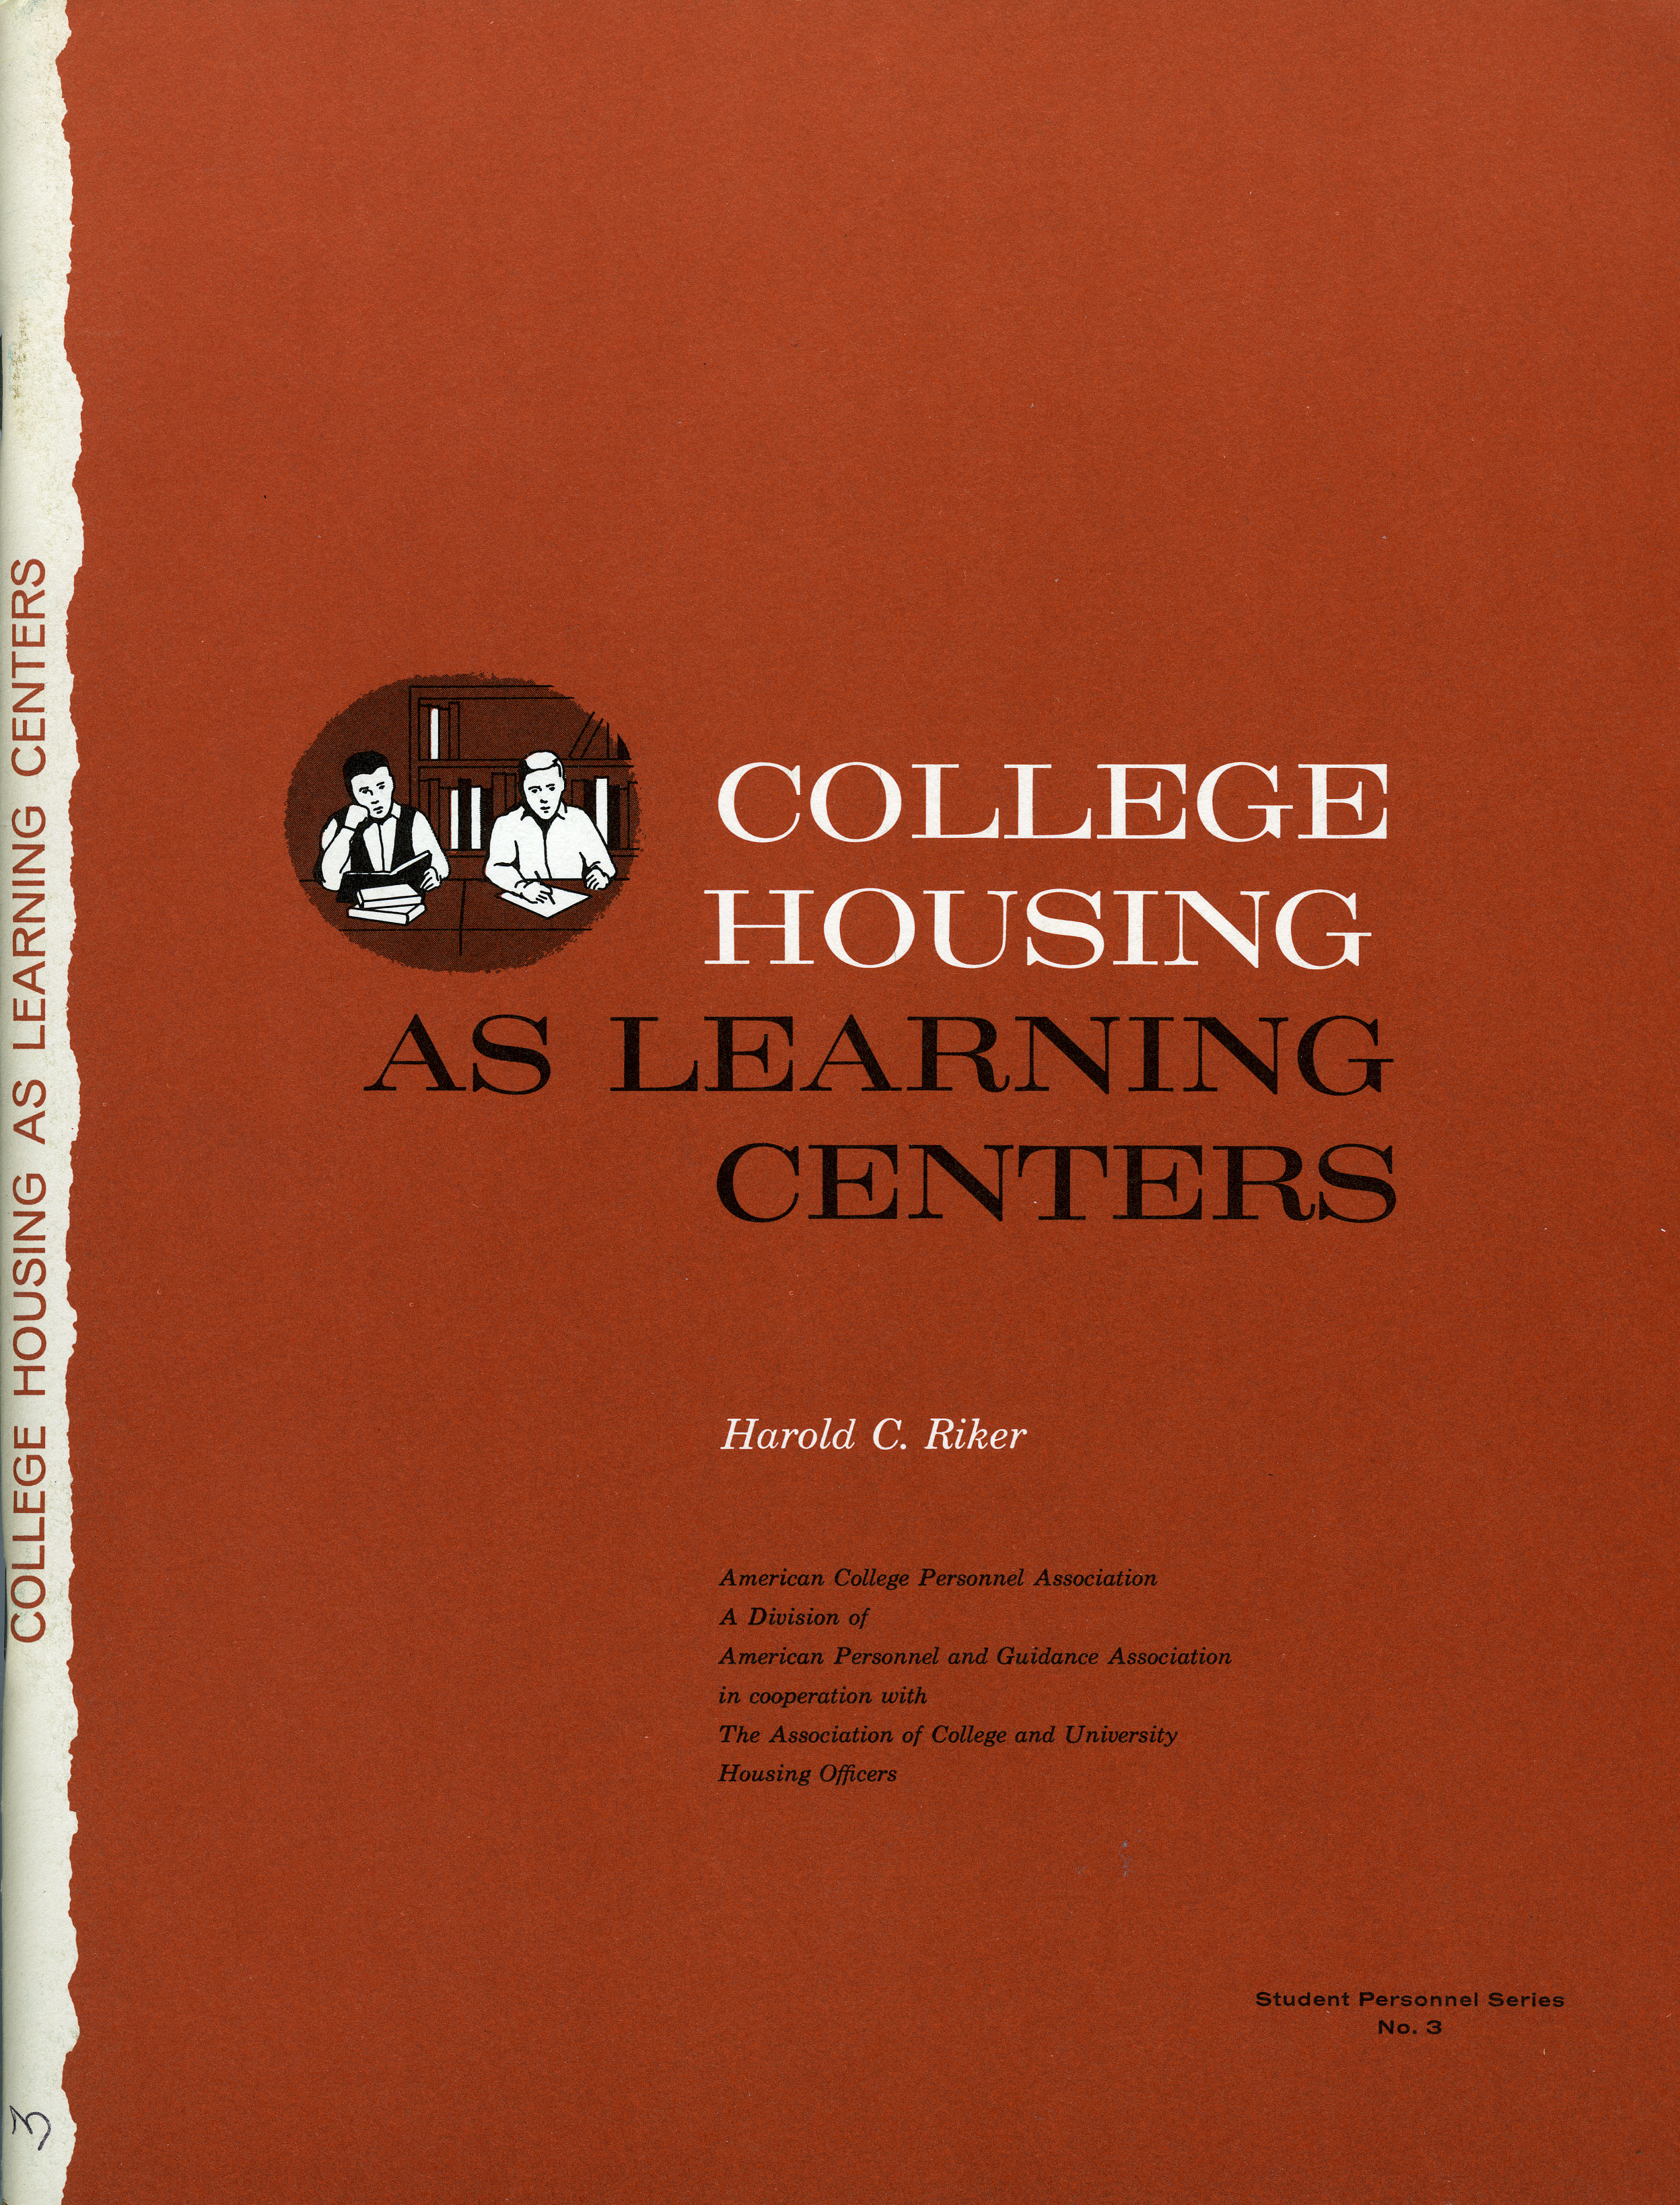 COLLEGE HOUSING AS LEARNING CENTERS